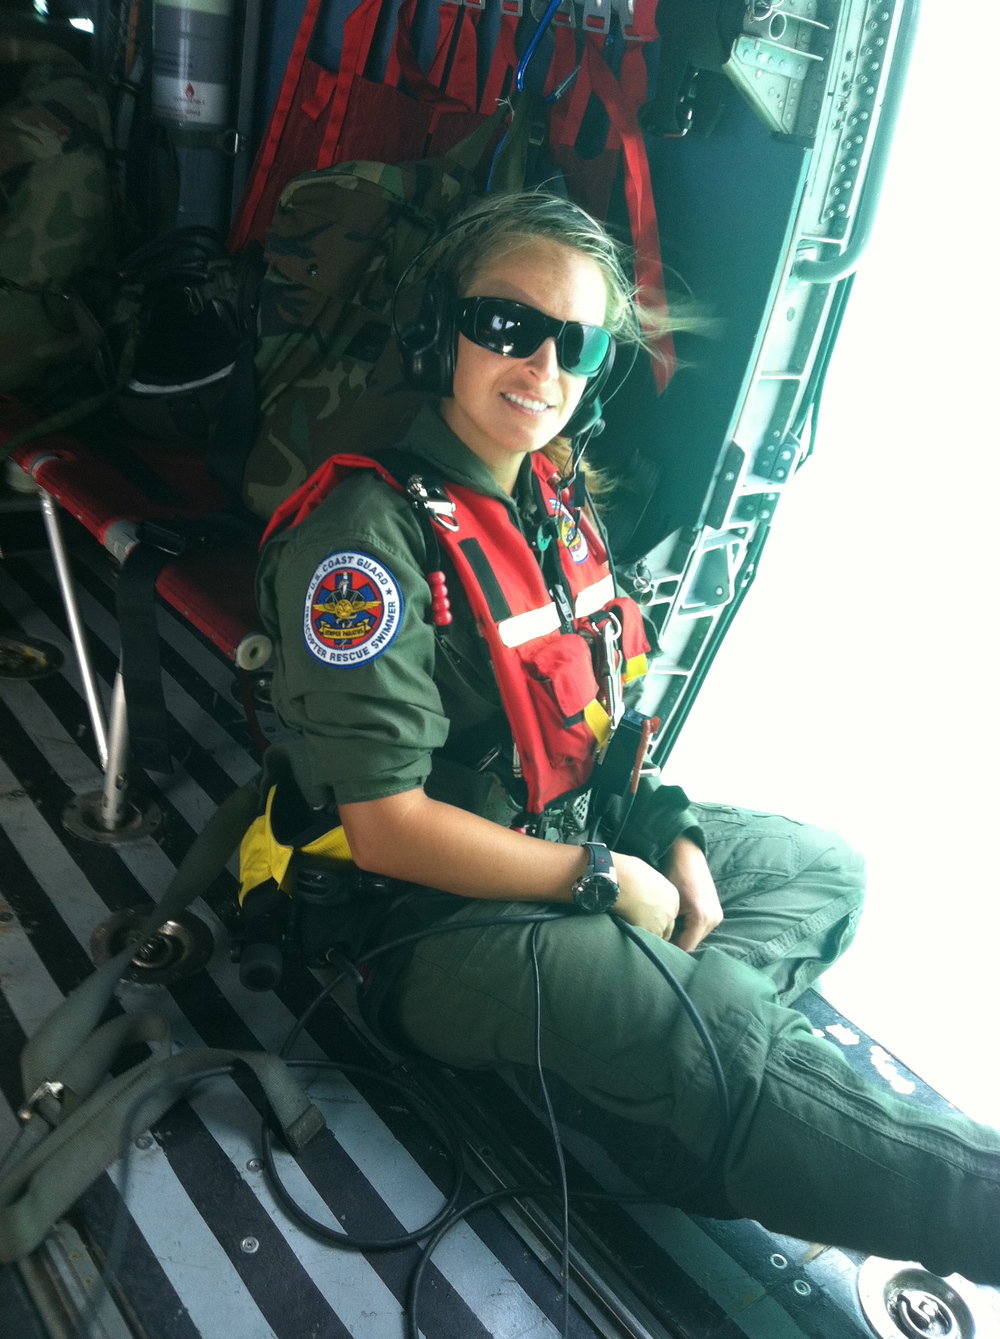 Sara Faulkner on patrol in the Carribean as a Coast Guard rescue swimmer